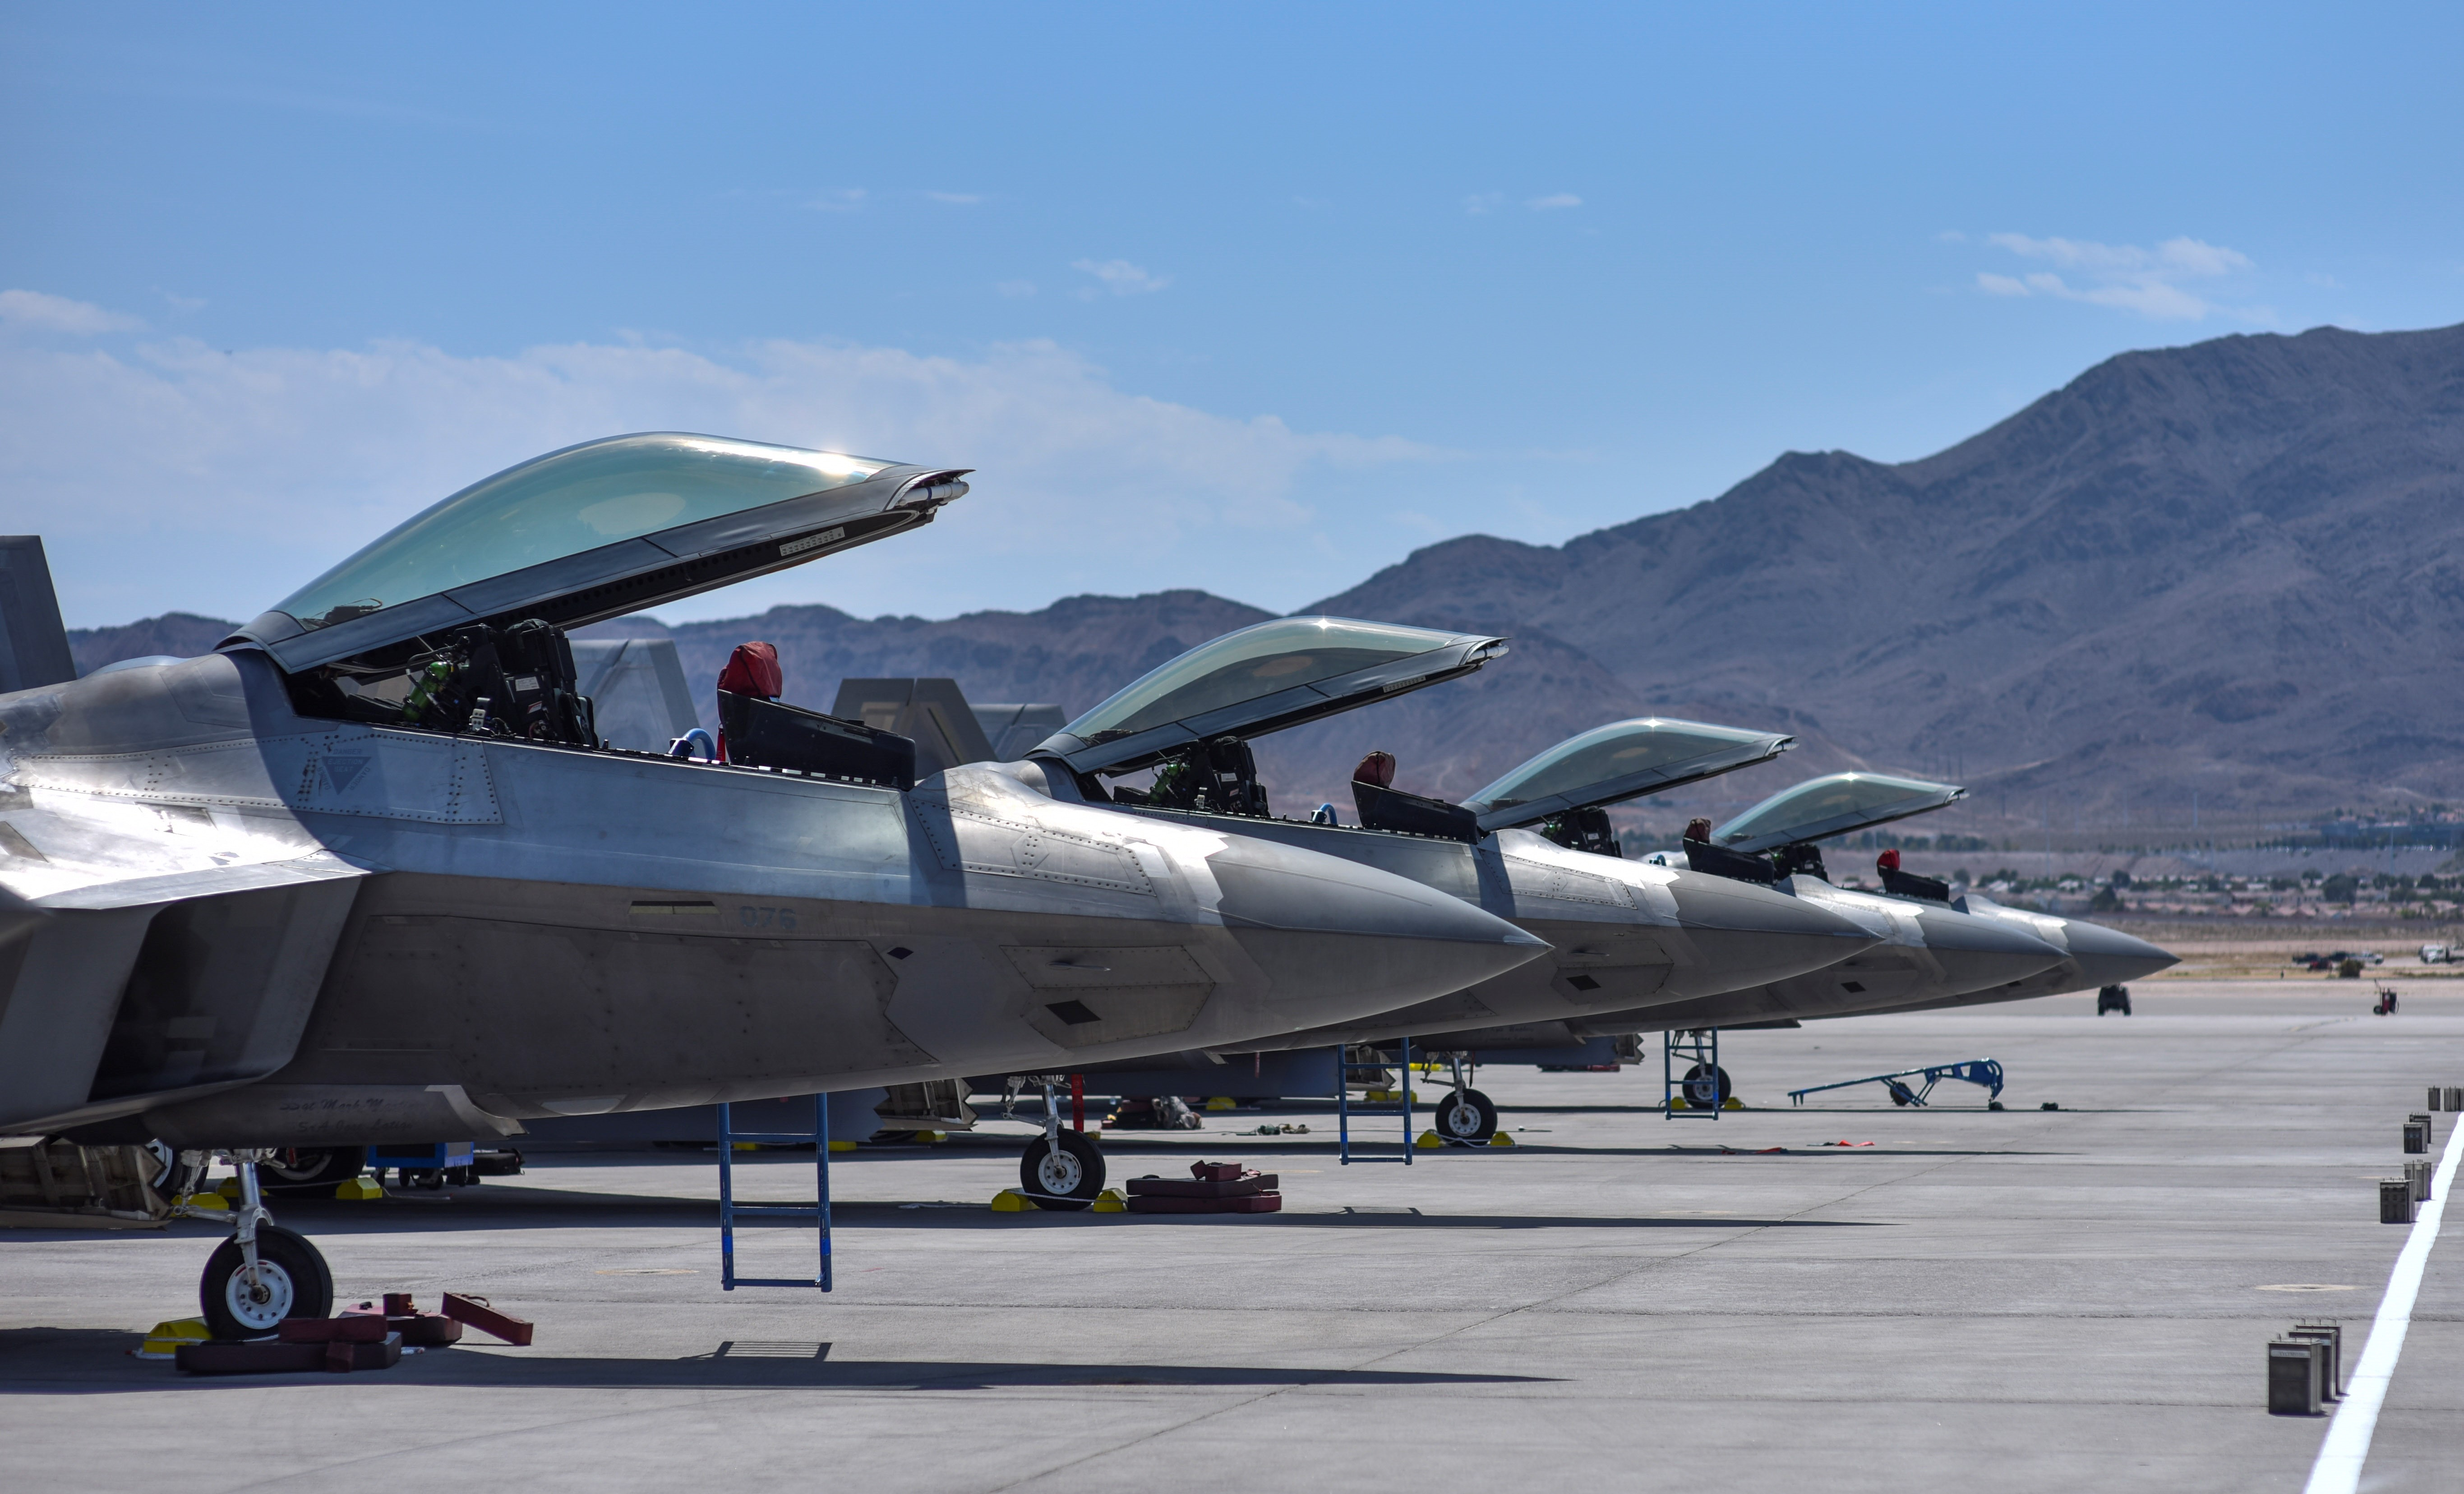 Shake, rattle and…boom? 2nd round of Red Flag combat